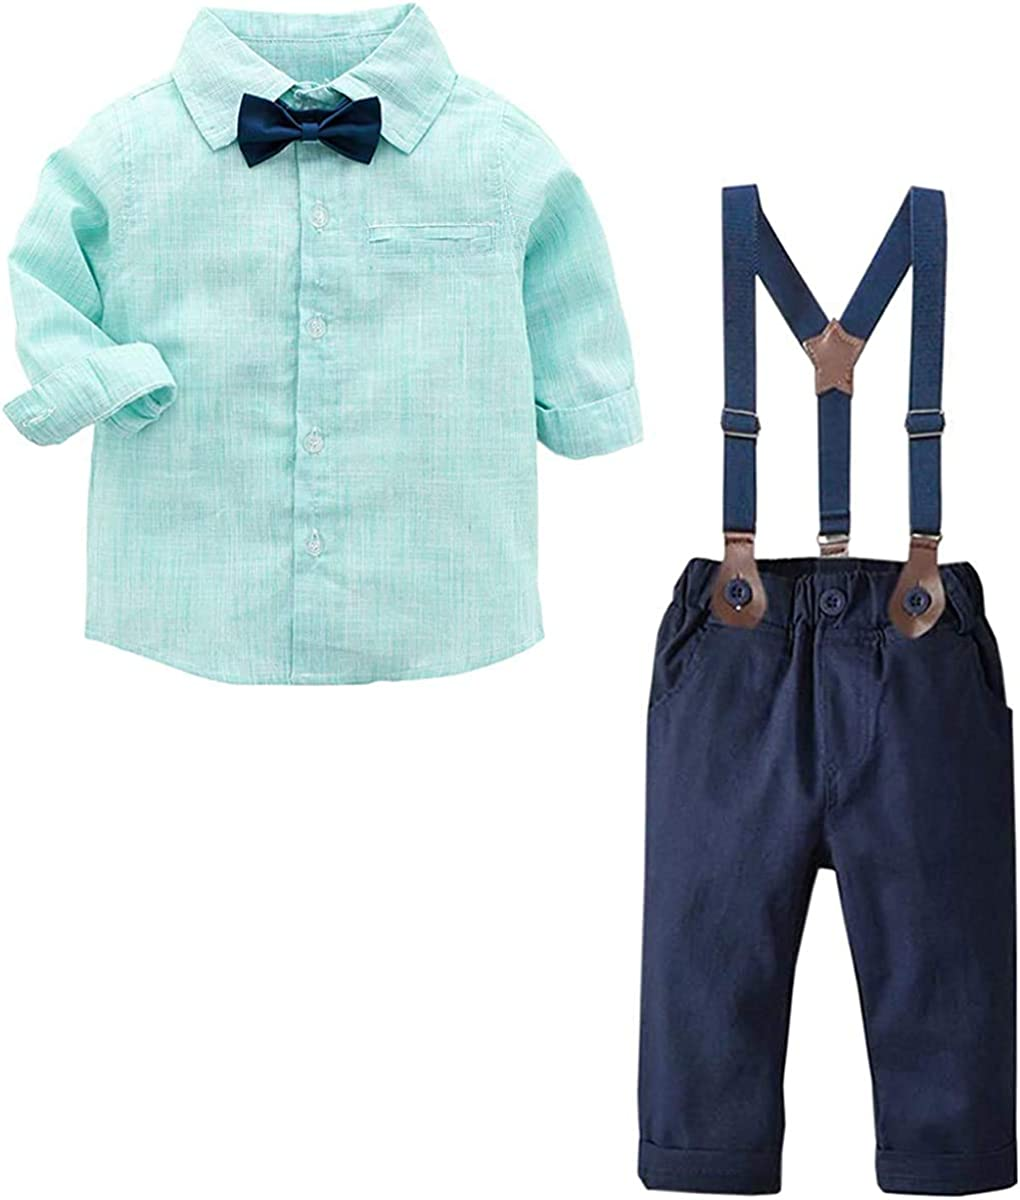 SANGTREE Baby Boys Clothes, Dress Shirt with Bowtie + Suspender...